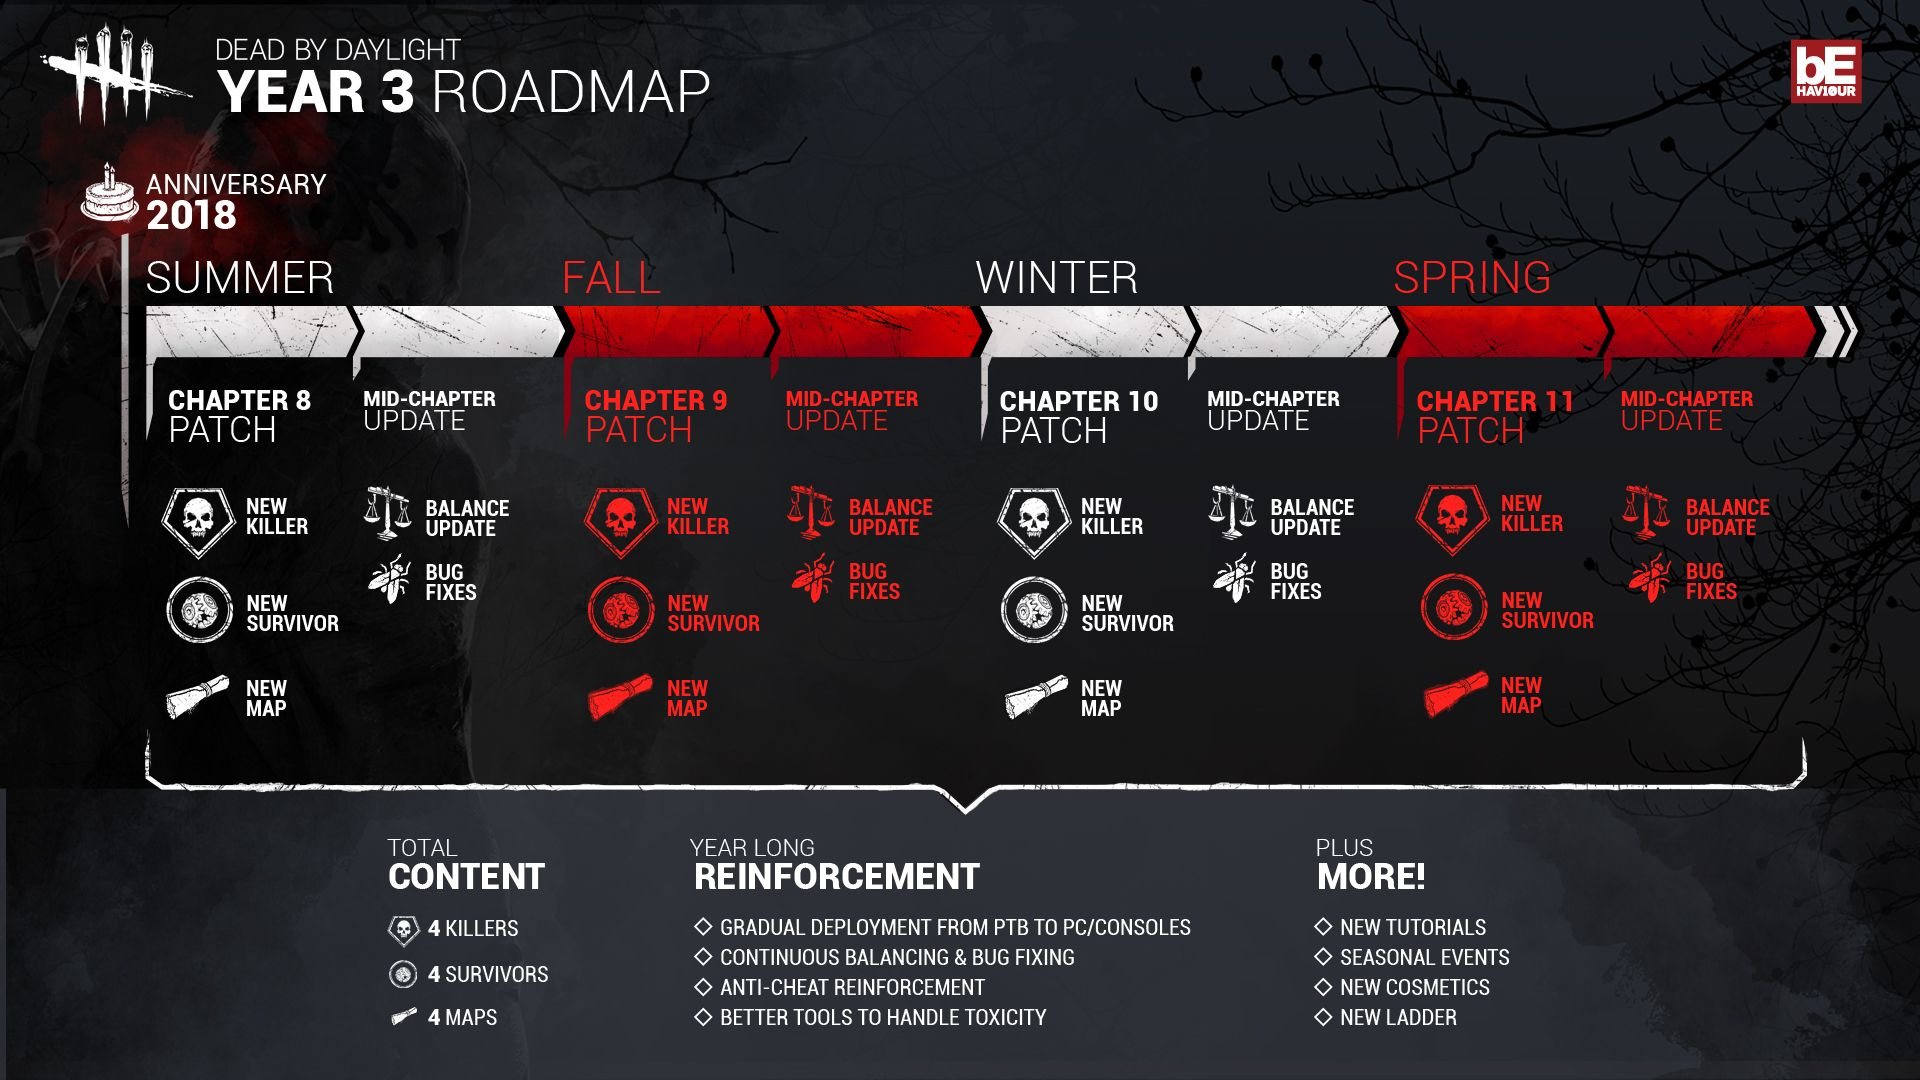 Dead by Daylight Roadmap 2018